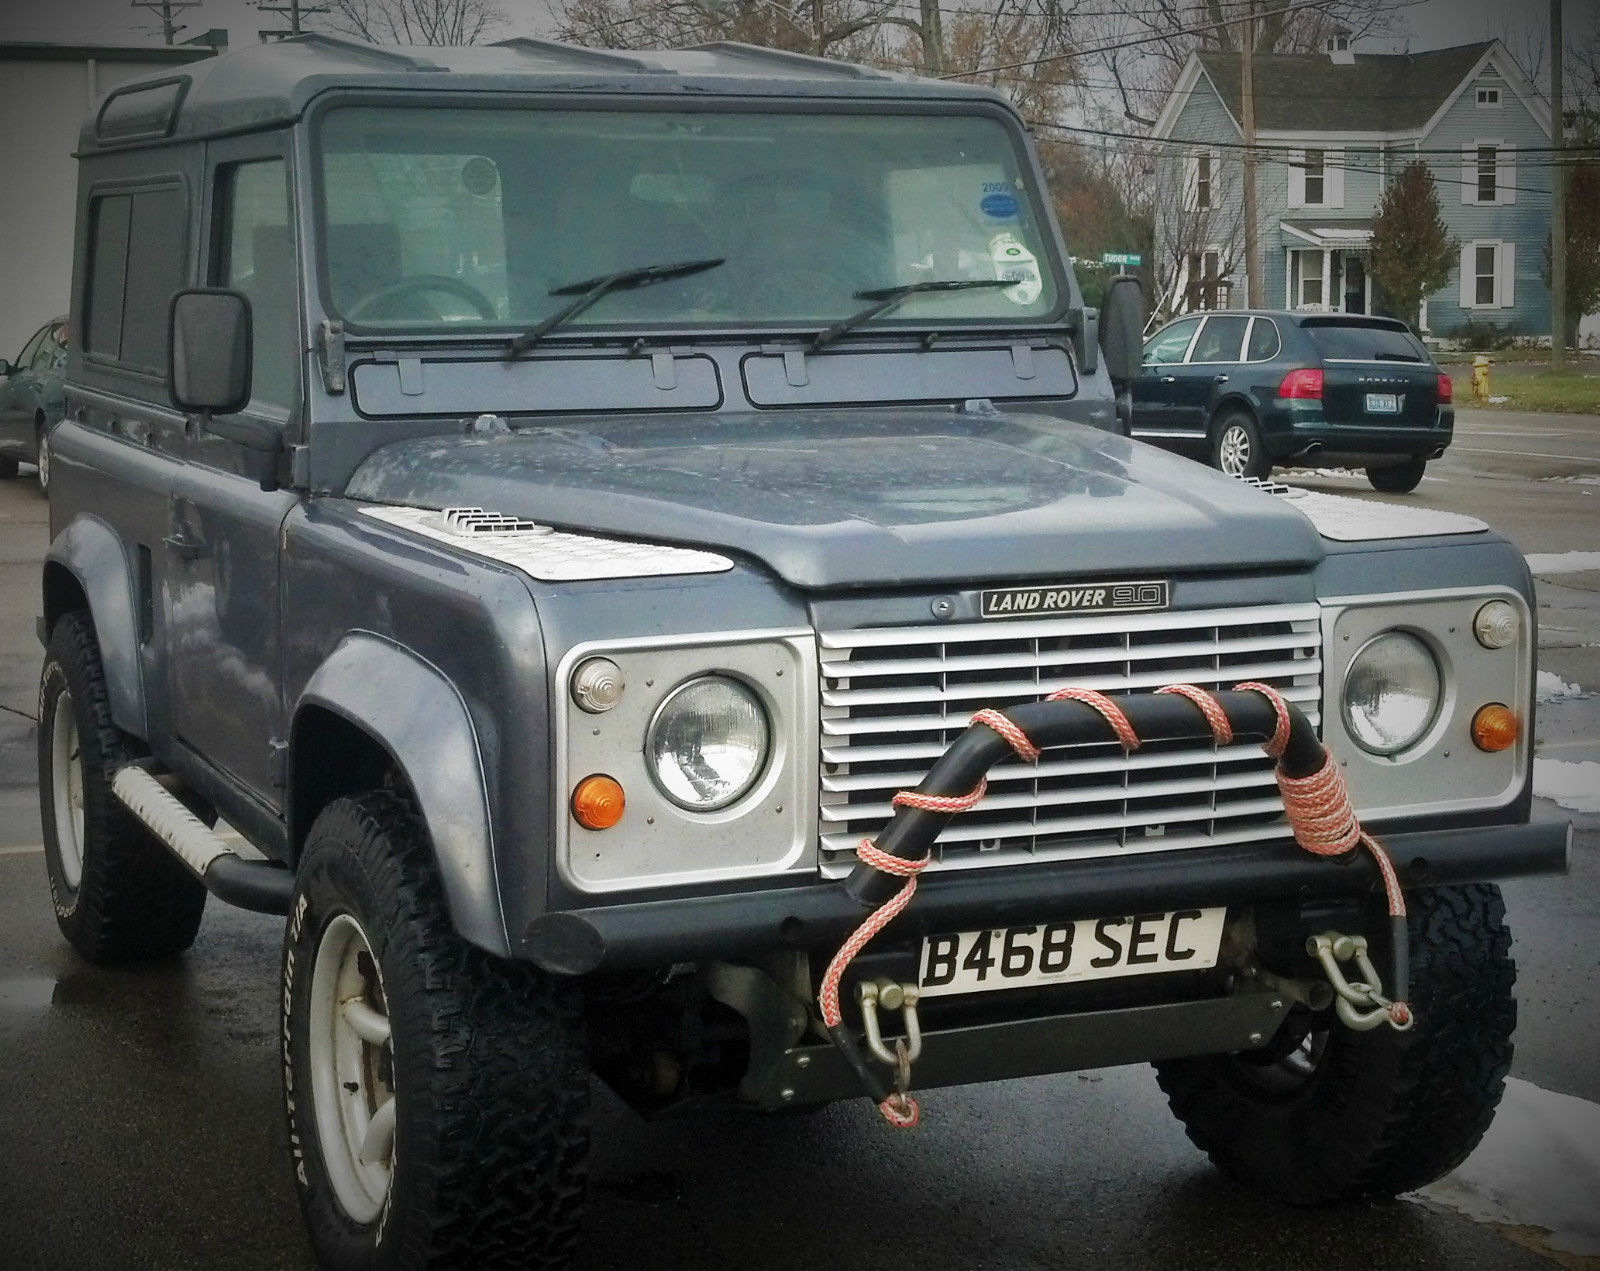 rare 1985 land rover defender 90 rhd v8 diamond plate galvanized chassis for sale in. Black Bedroom Furniture Sets. Home Design Ideas